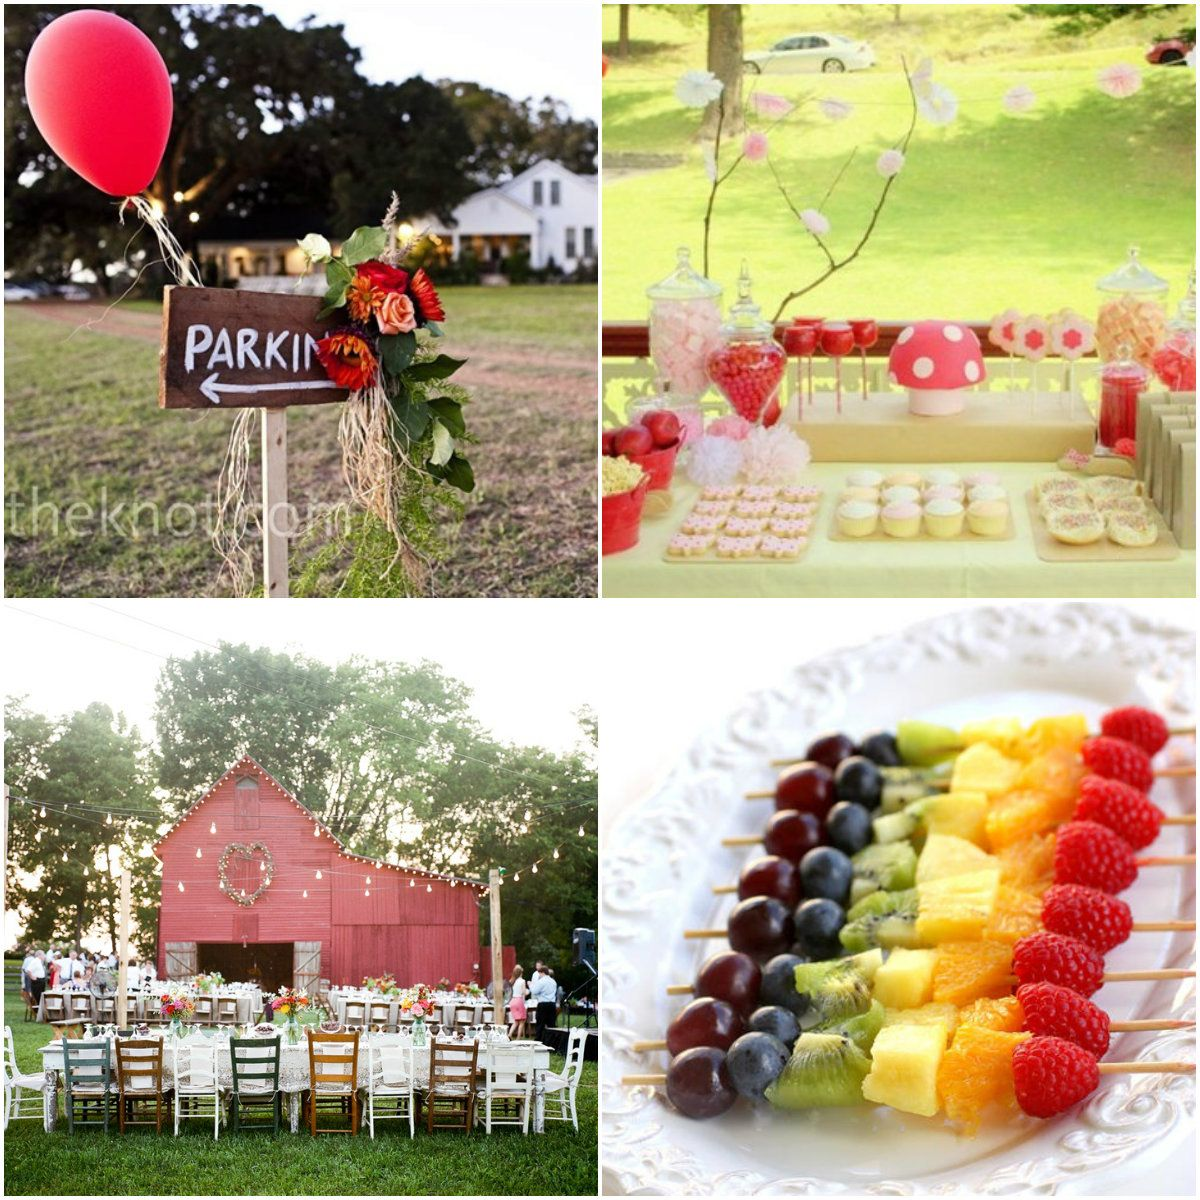 18th birthday garden party decorations party ideas for 18th birthday party decoration